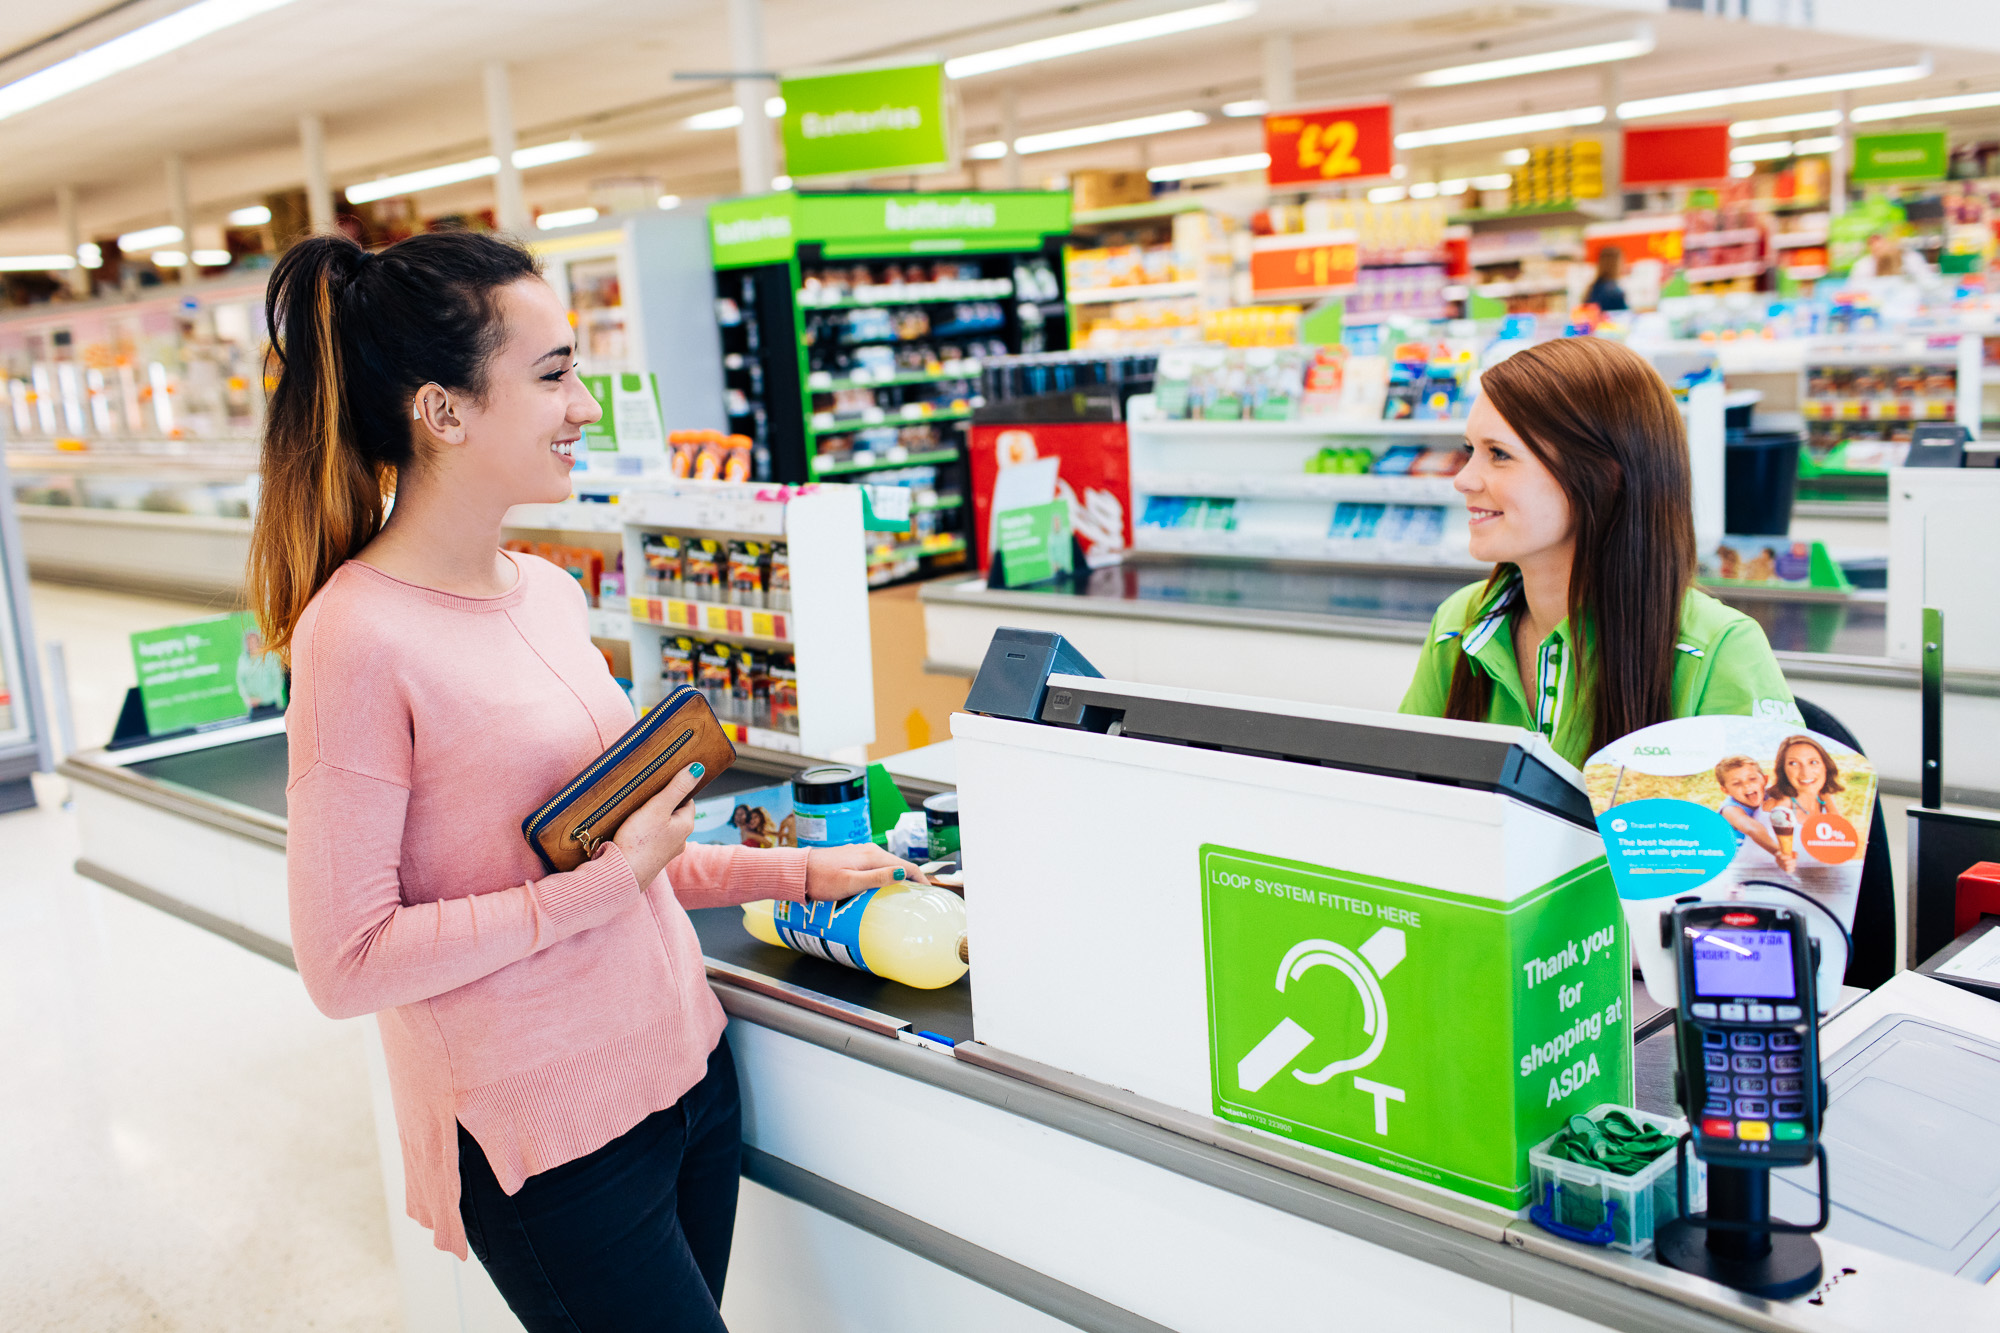 Supermarket shoot in Asda for Contacta, showing their Hearing Loop in use